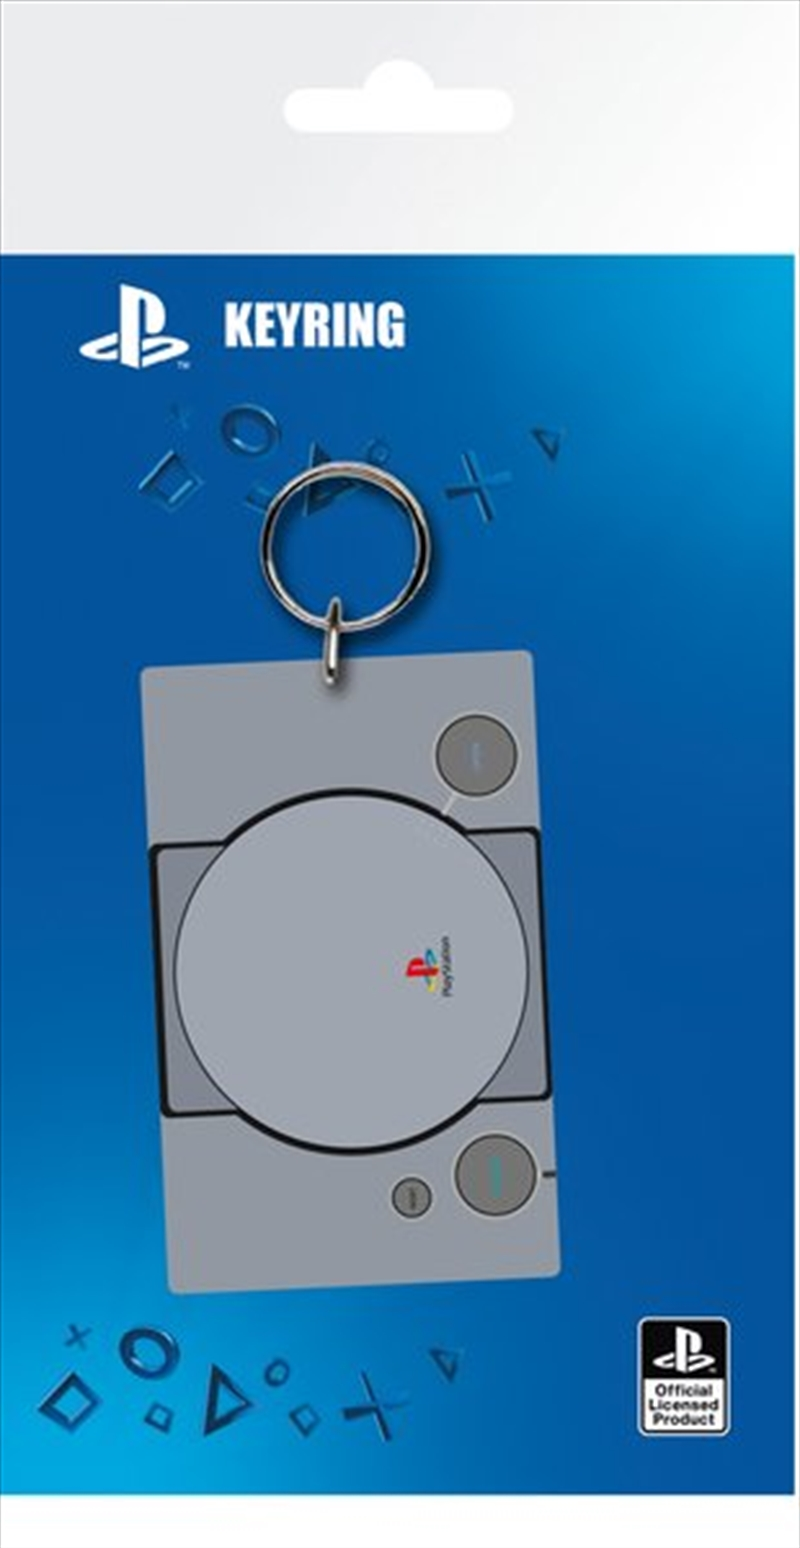 Console Keyring | Accessories